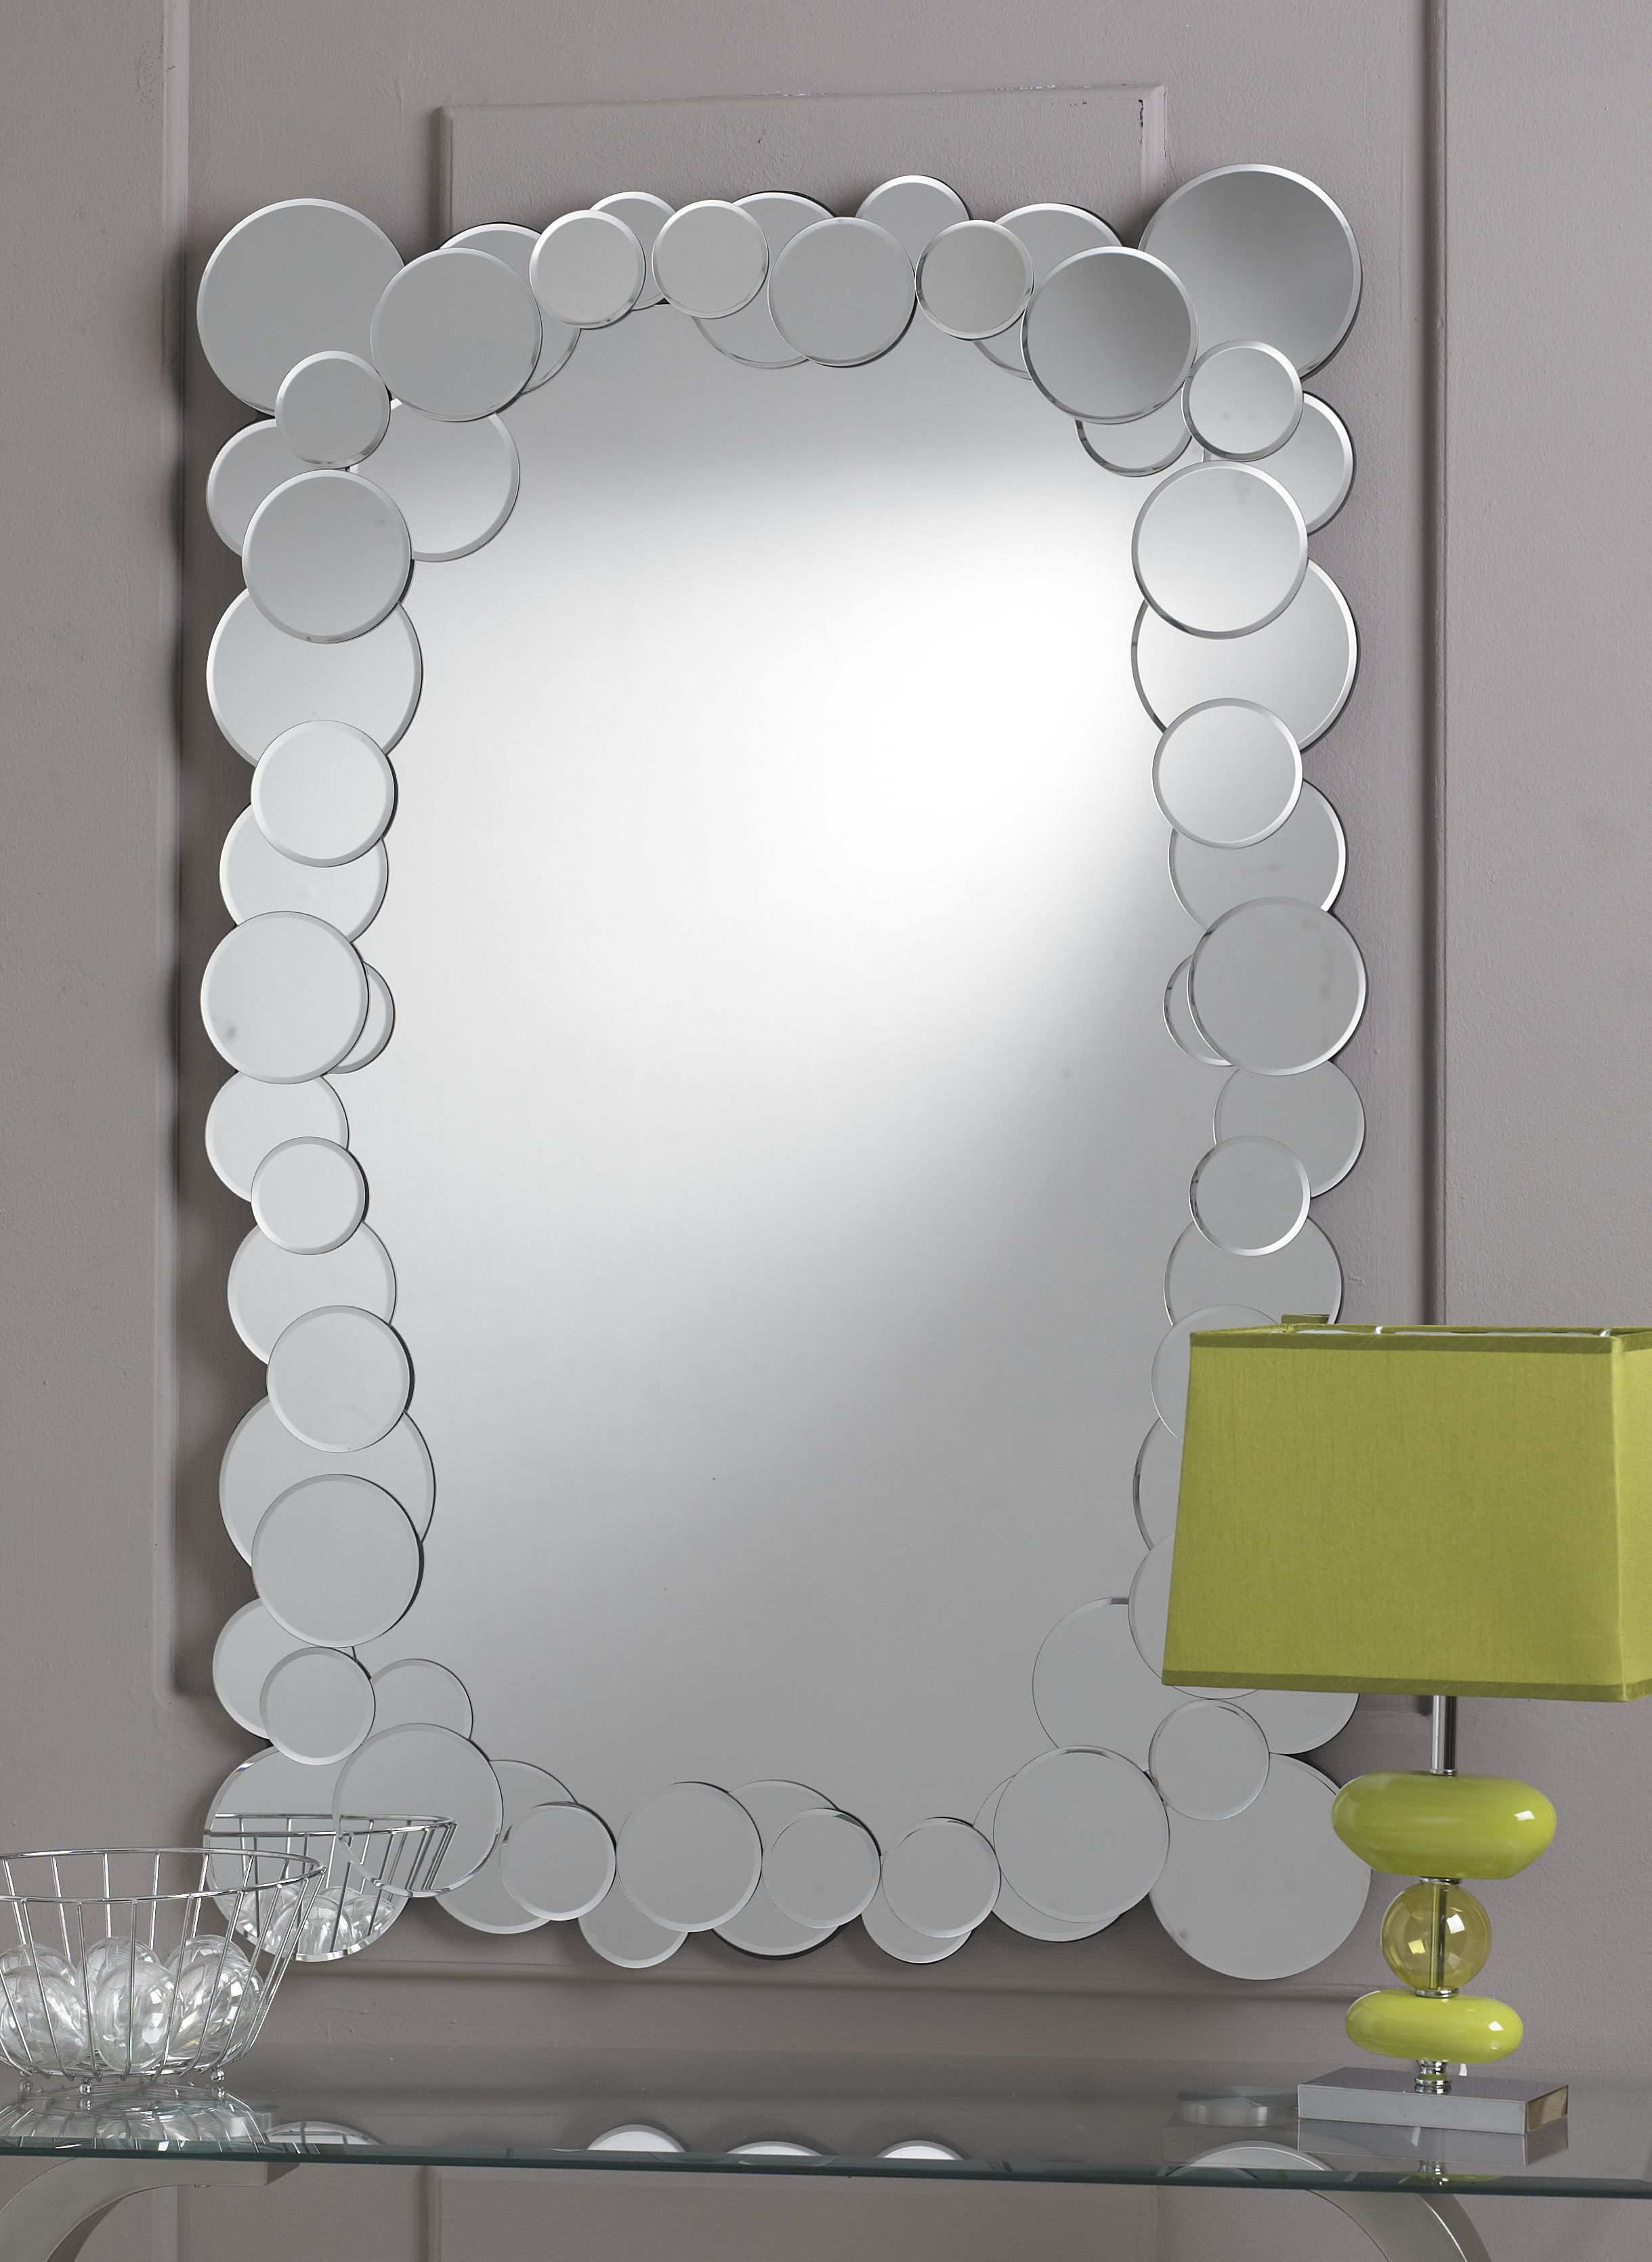 A elegant an unique wall mirror the funky styled bubble mirror a elegant an unique wall mirror the funky styled bubble mirror gives a stylish look amipublicfo Images